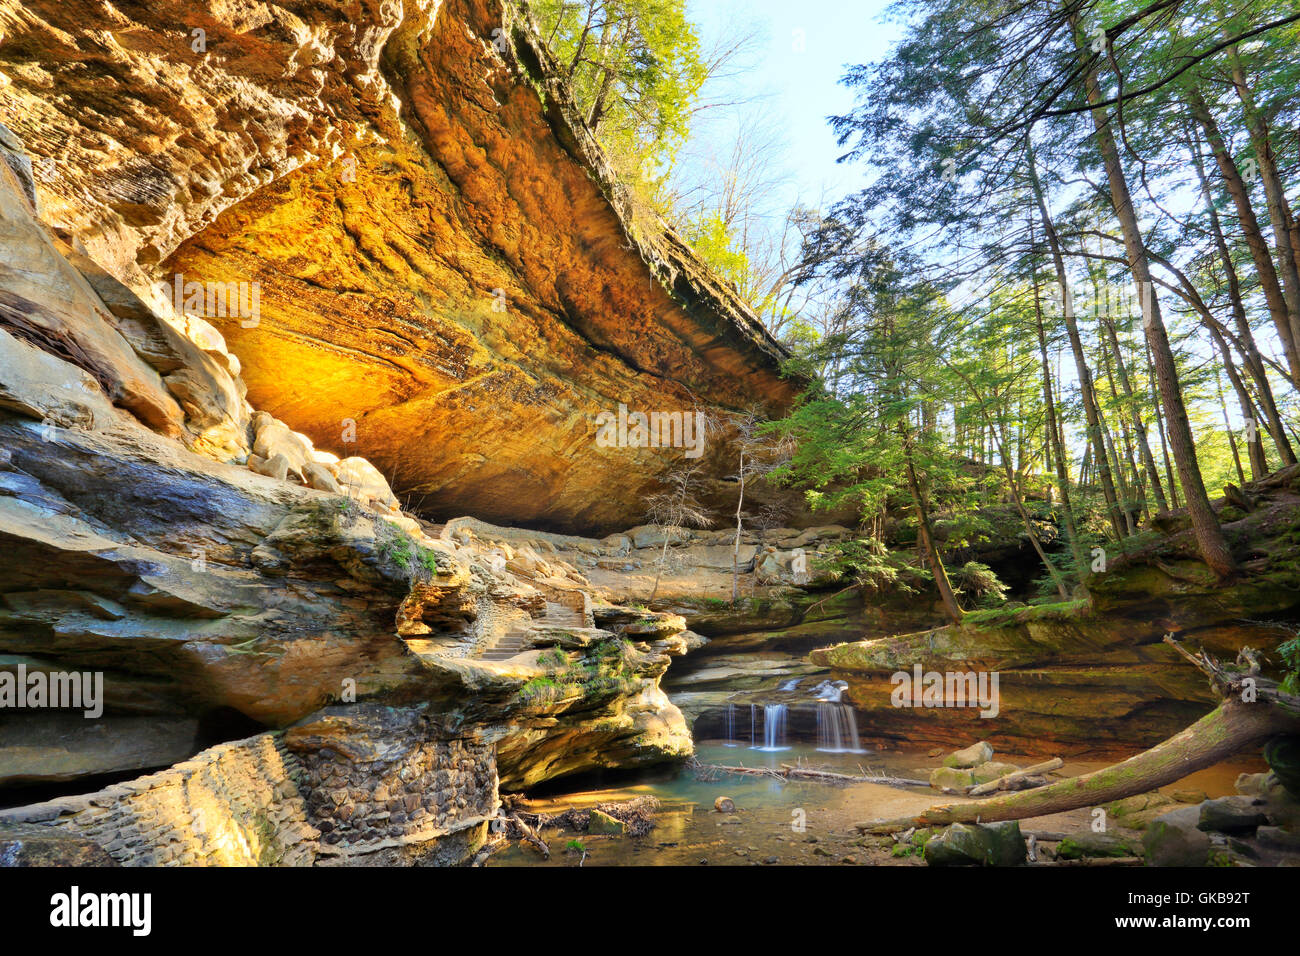 Cave, Old Mans Cave, Hocking Hills State Park, Logan, Ohio, USA - Stock Image